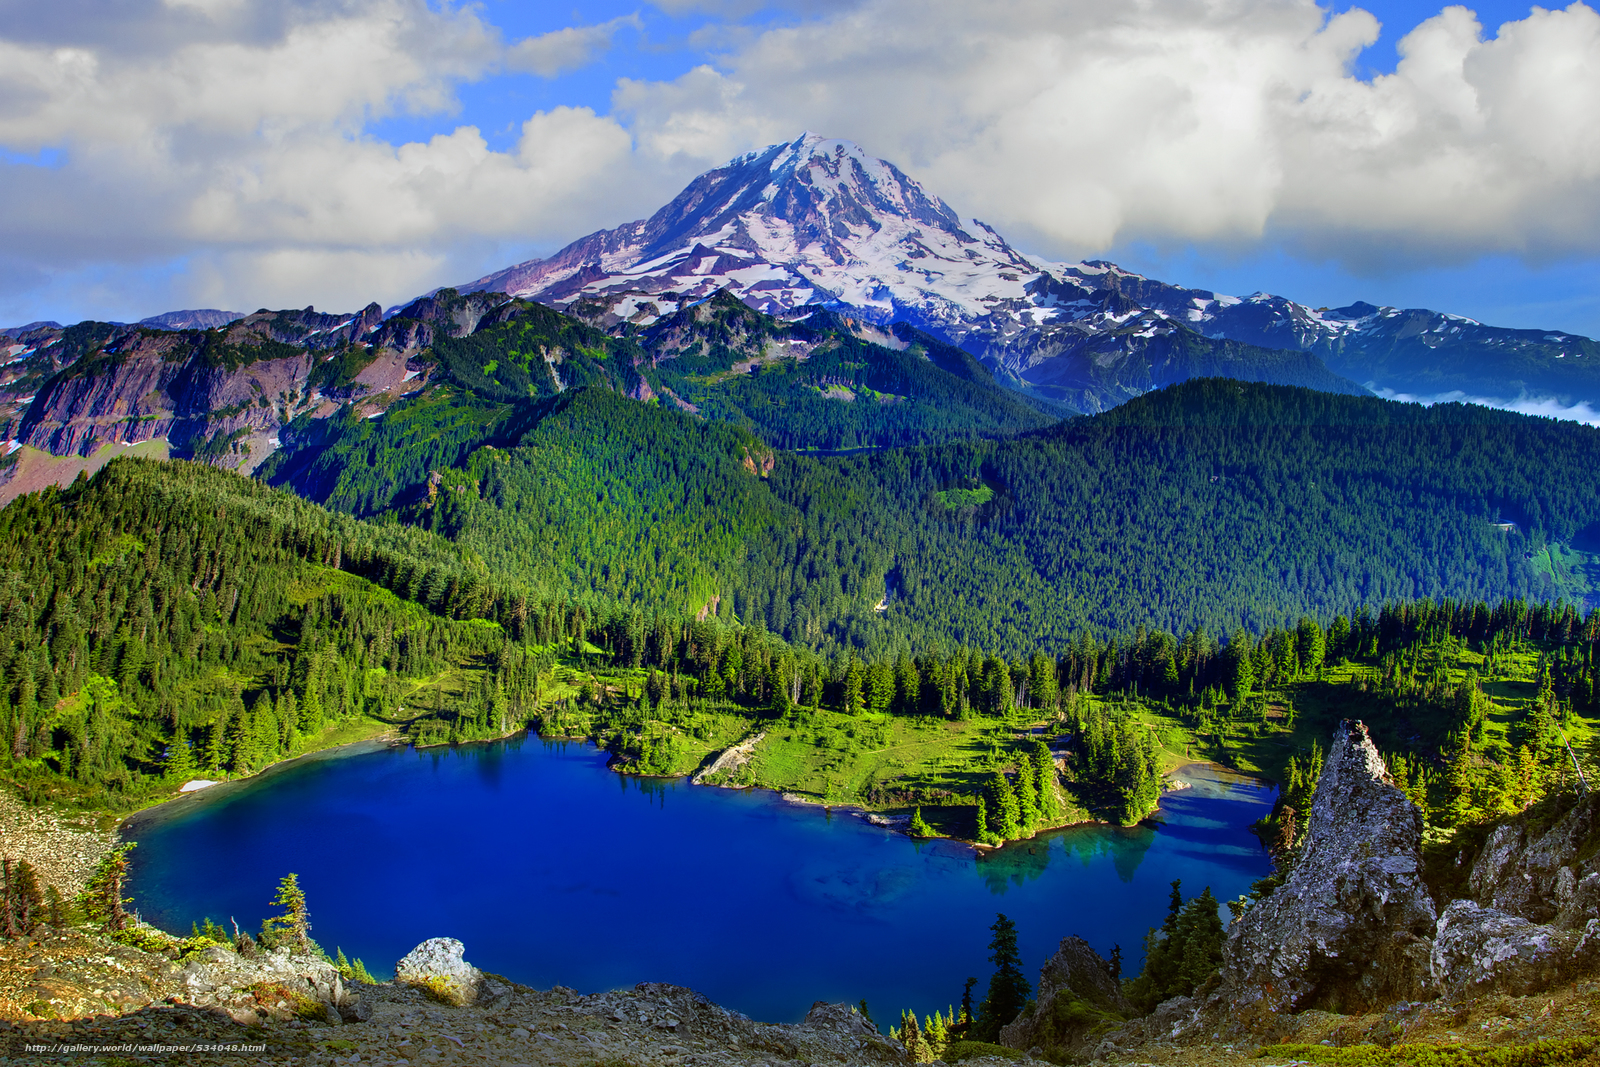 peak mount rainier national park washington desktop wallpaper 1600x1067